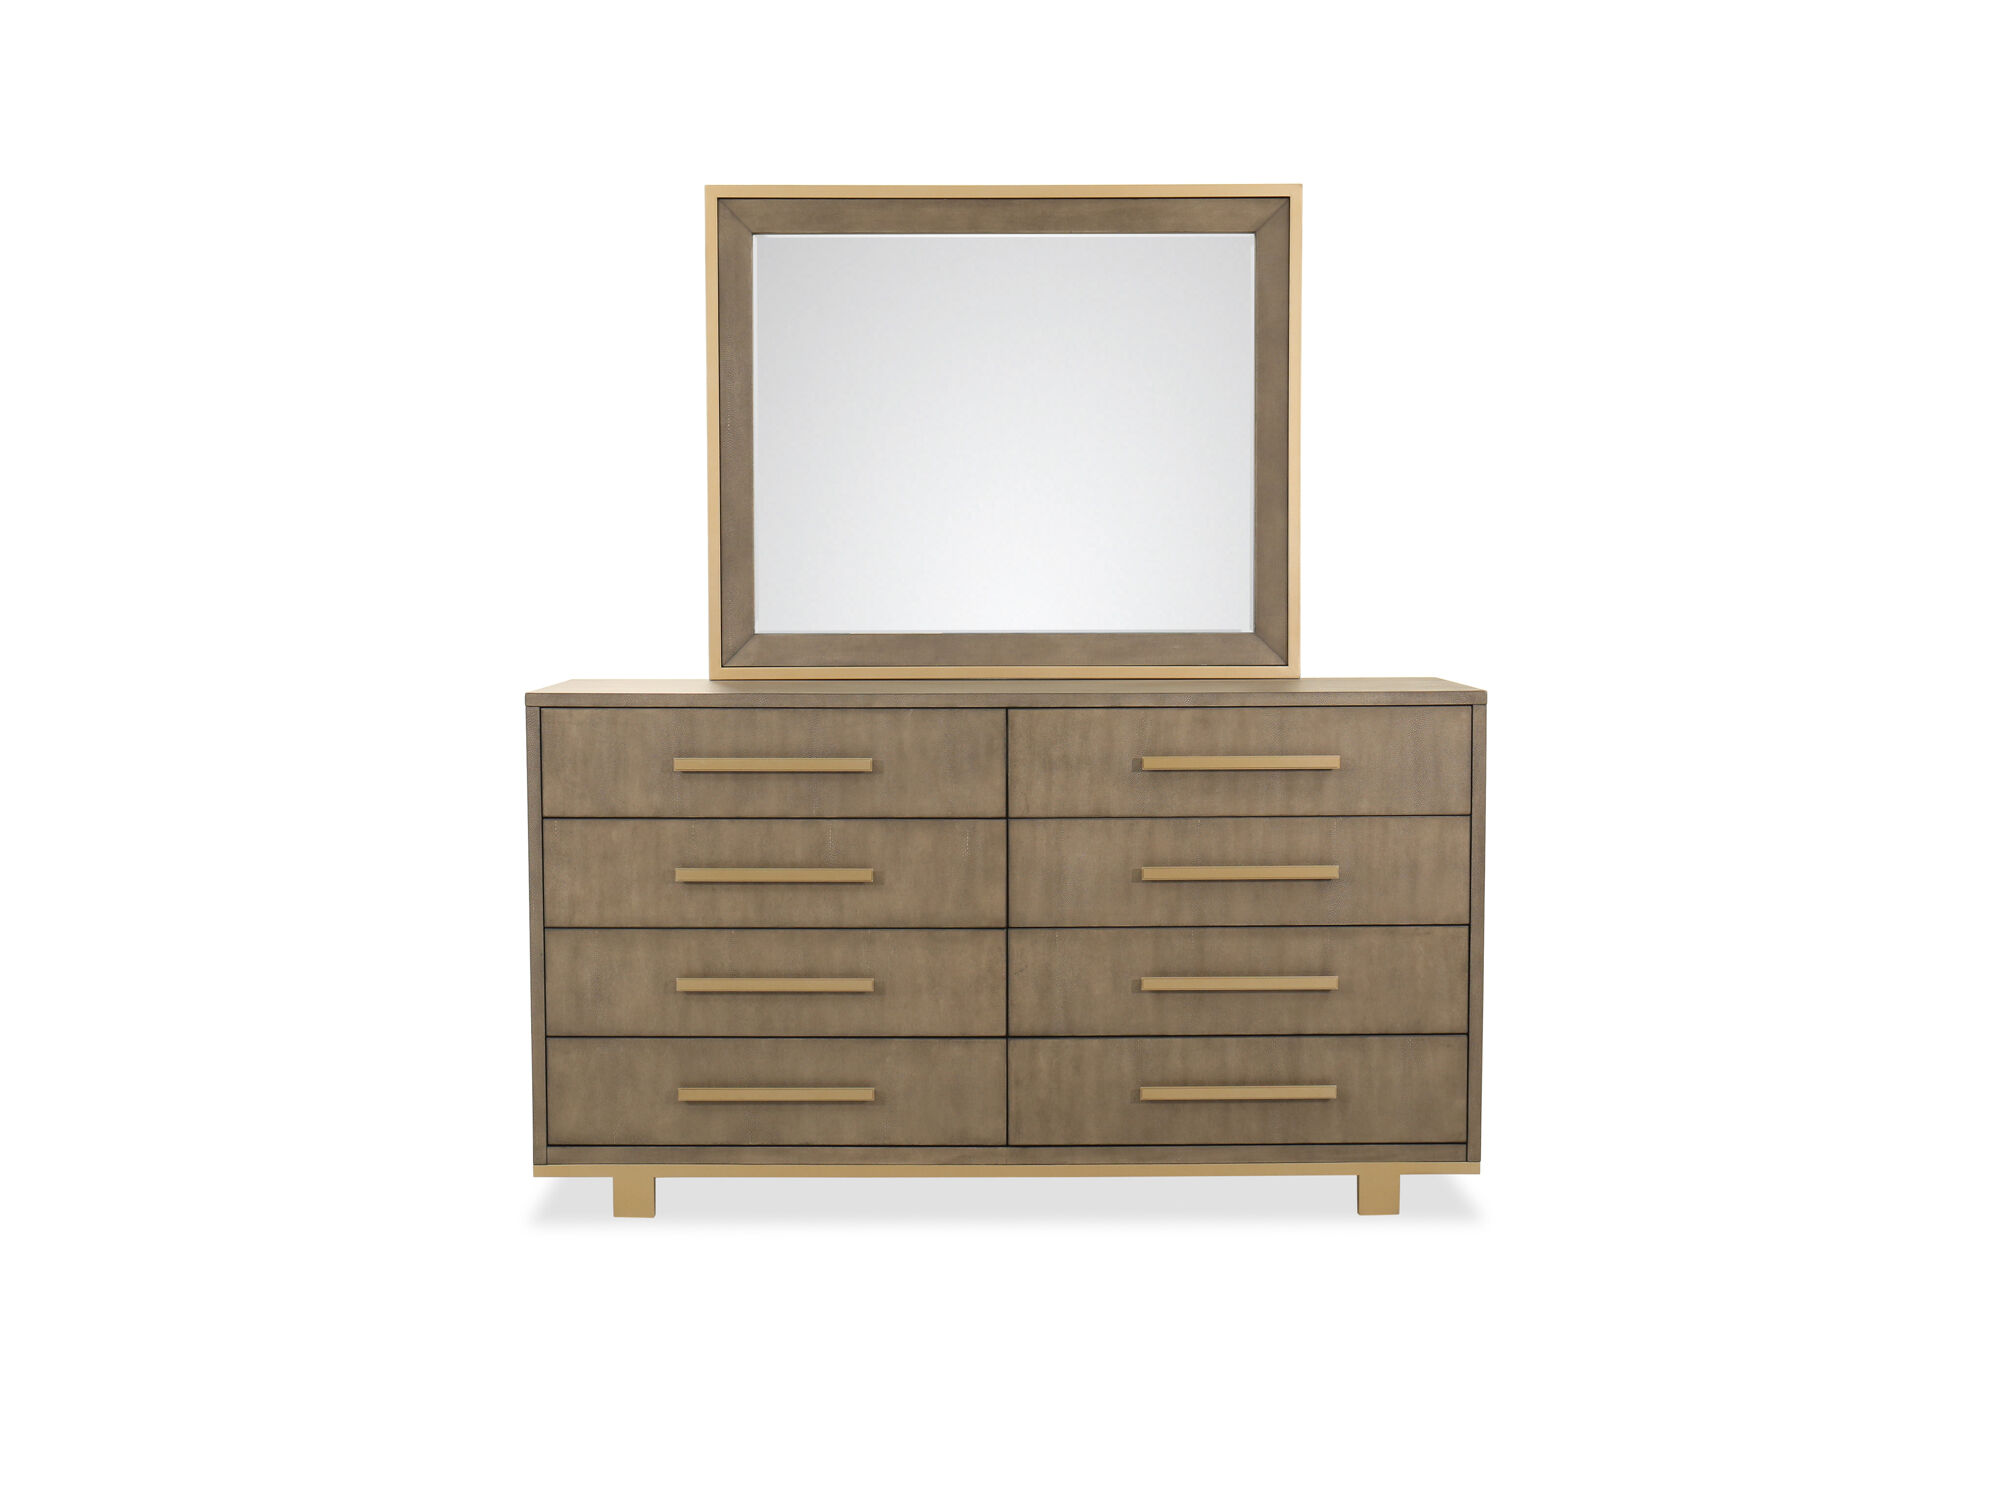 ... While The Top Drawers With Felt Bottoms Are Great For Storing  Delicates. The Landscape Mirror Comes With A Beveled Glass And Wooden  Supports For Safe ...